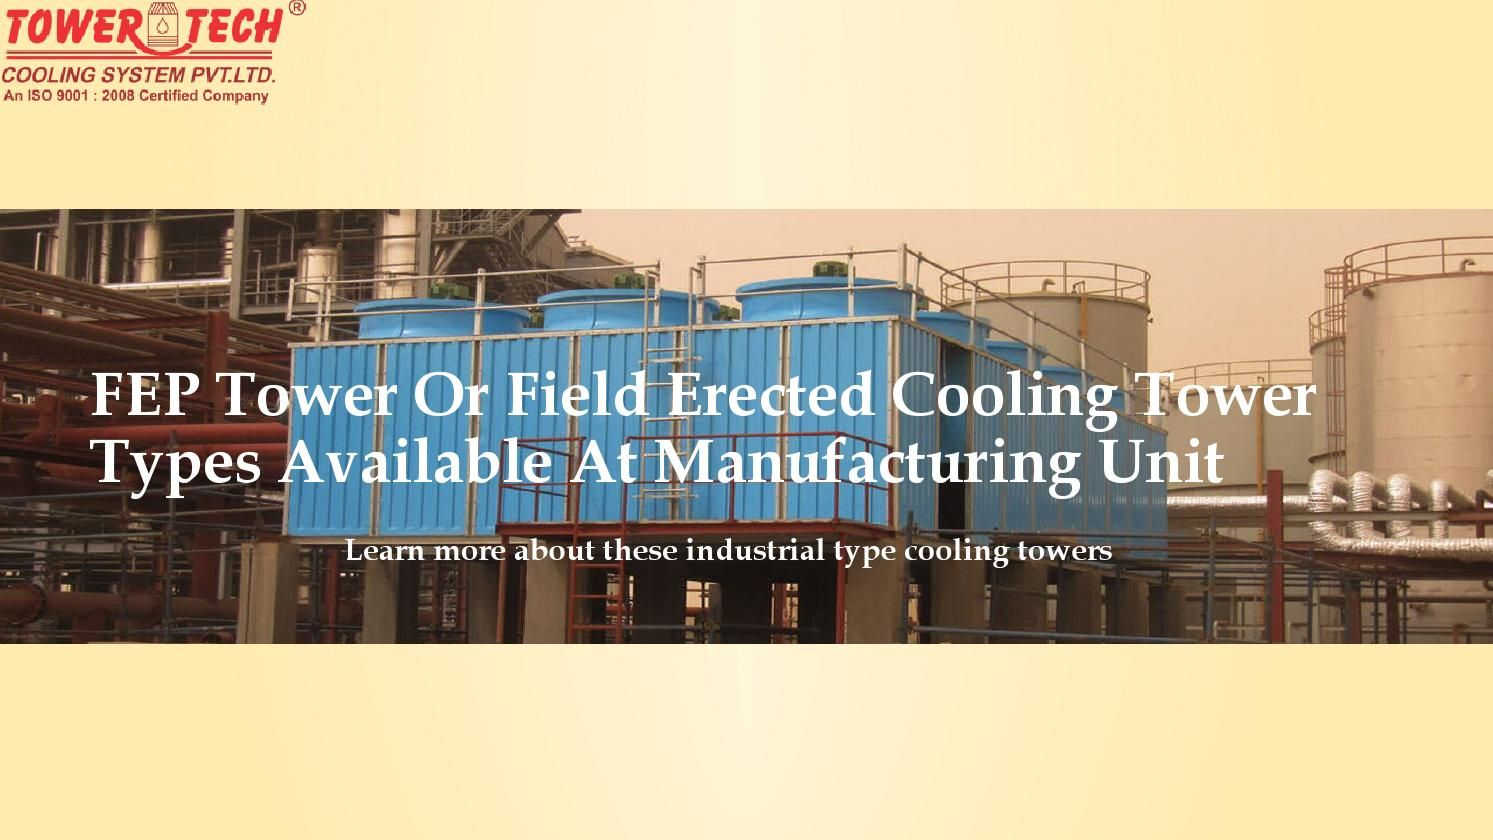 Fep Tower Or Field Erected Cooling Tower Types Available At